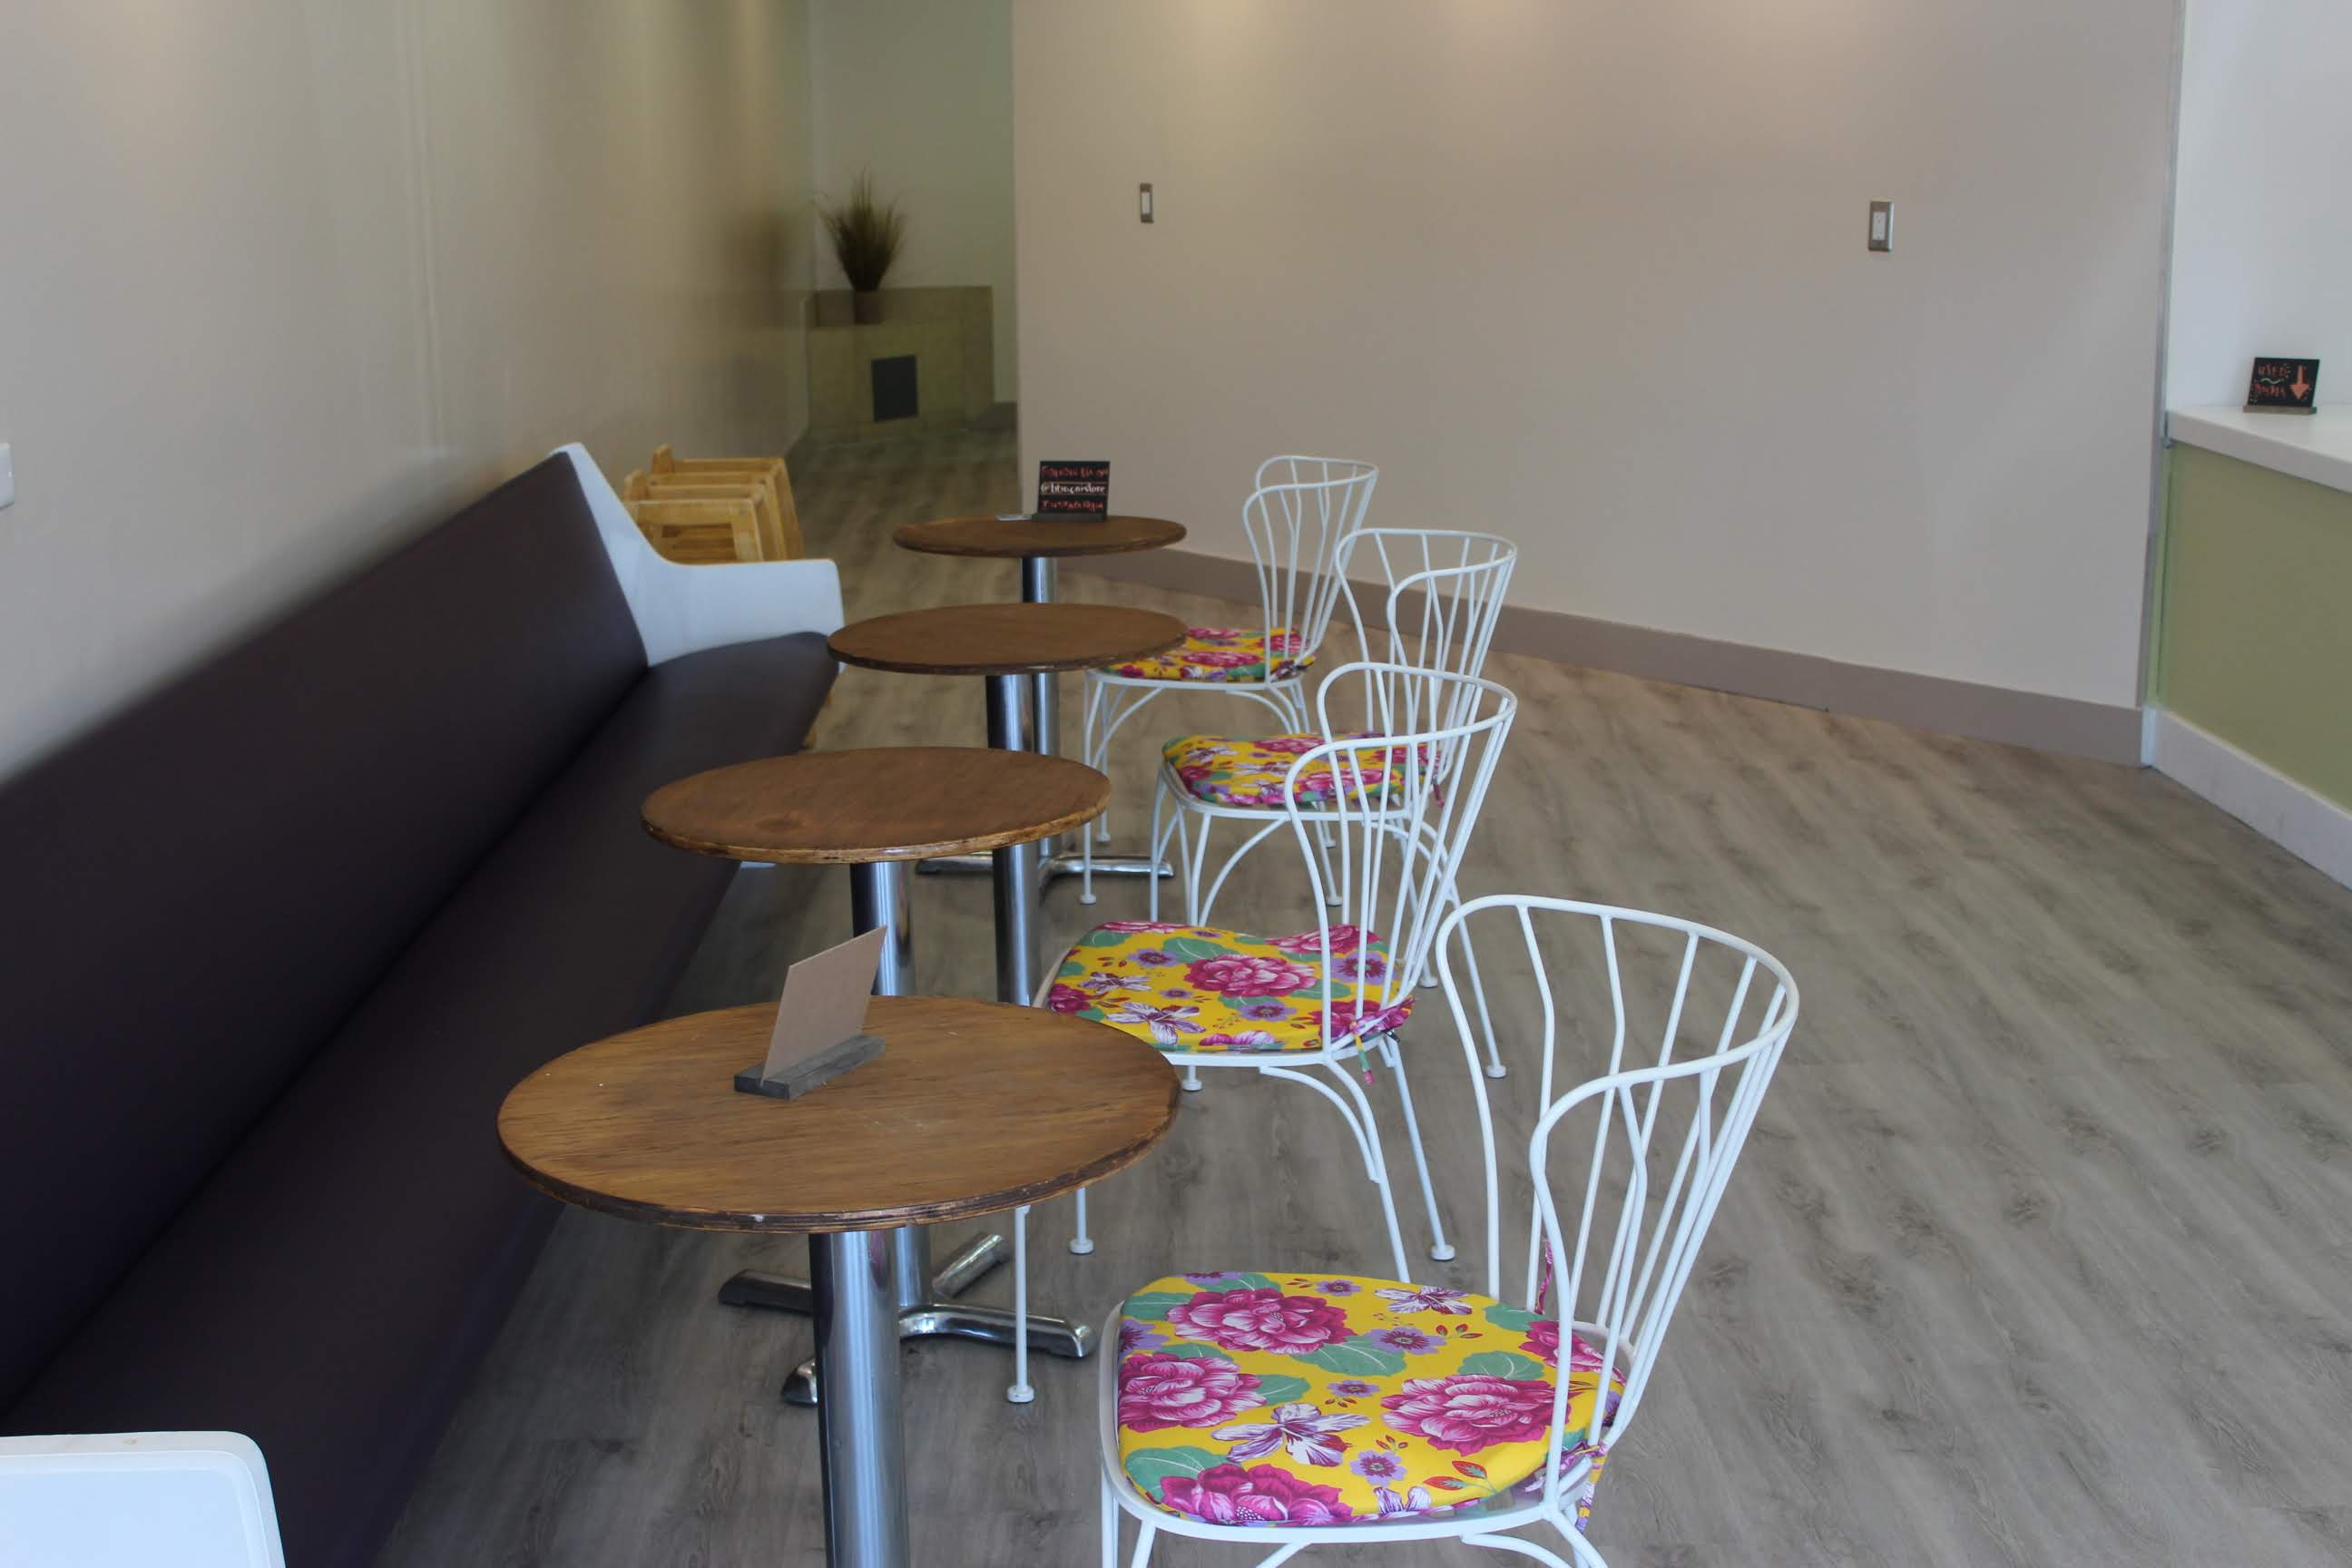 The seating and design of the shop. Credit: Abby Sourwine / The Foothill Dragon Press